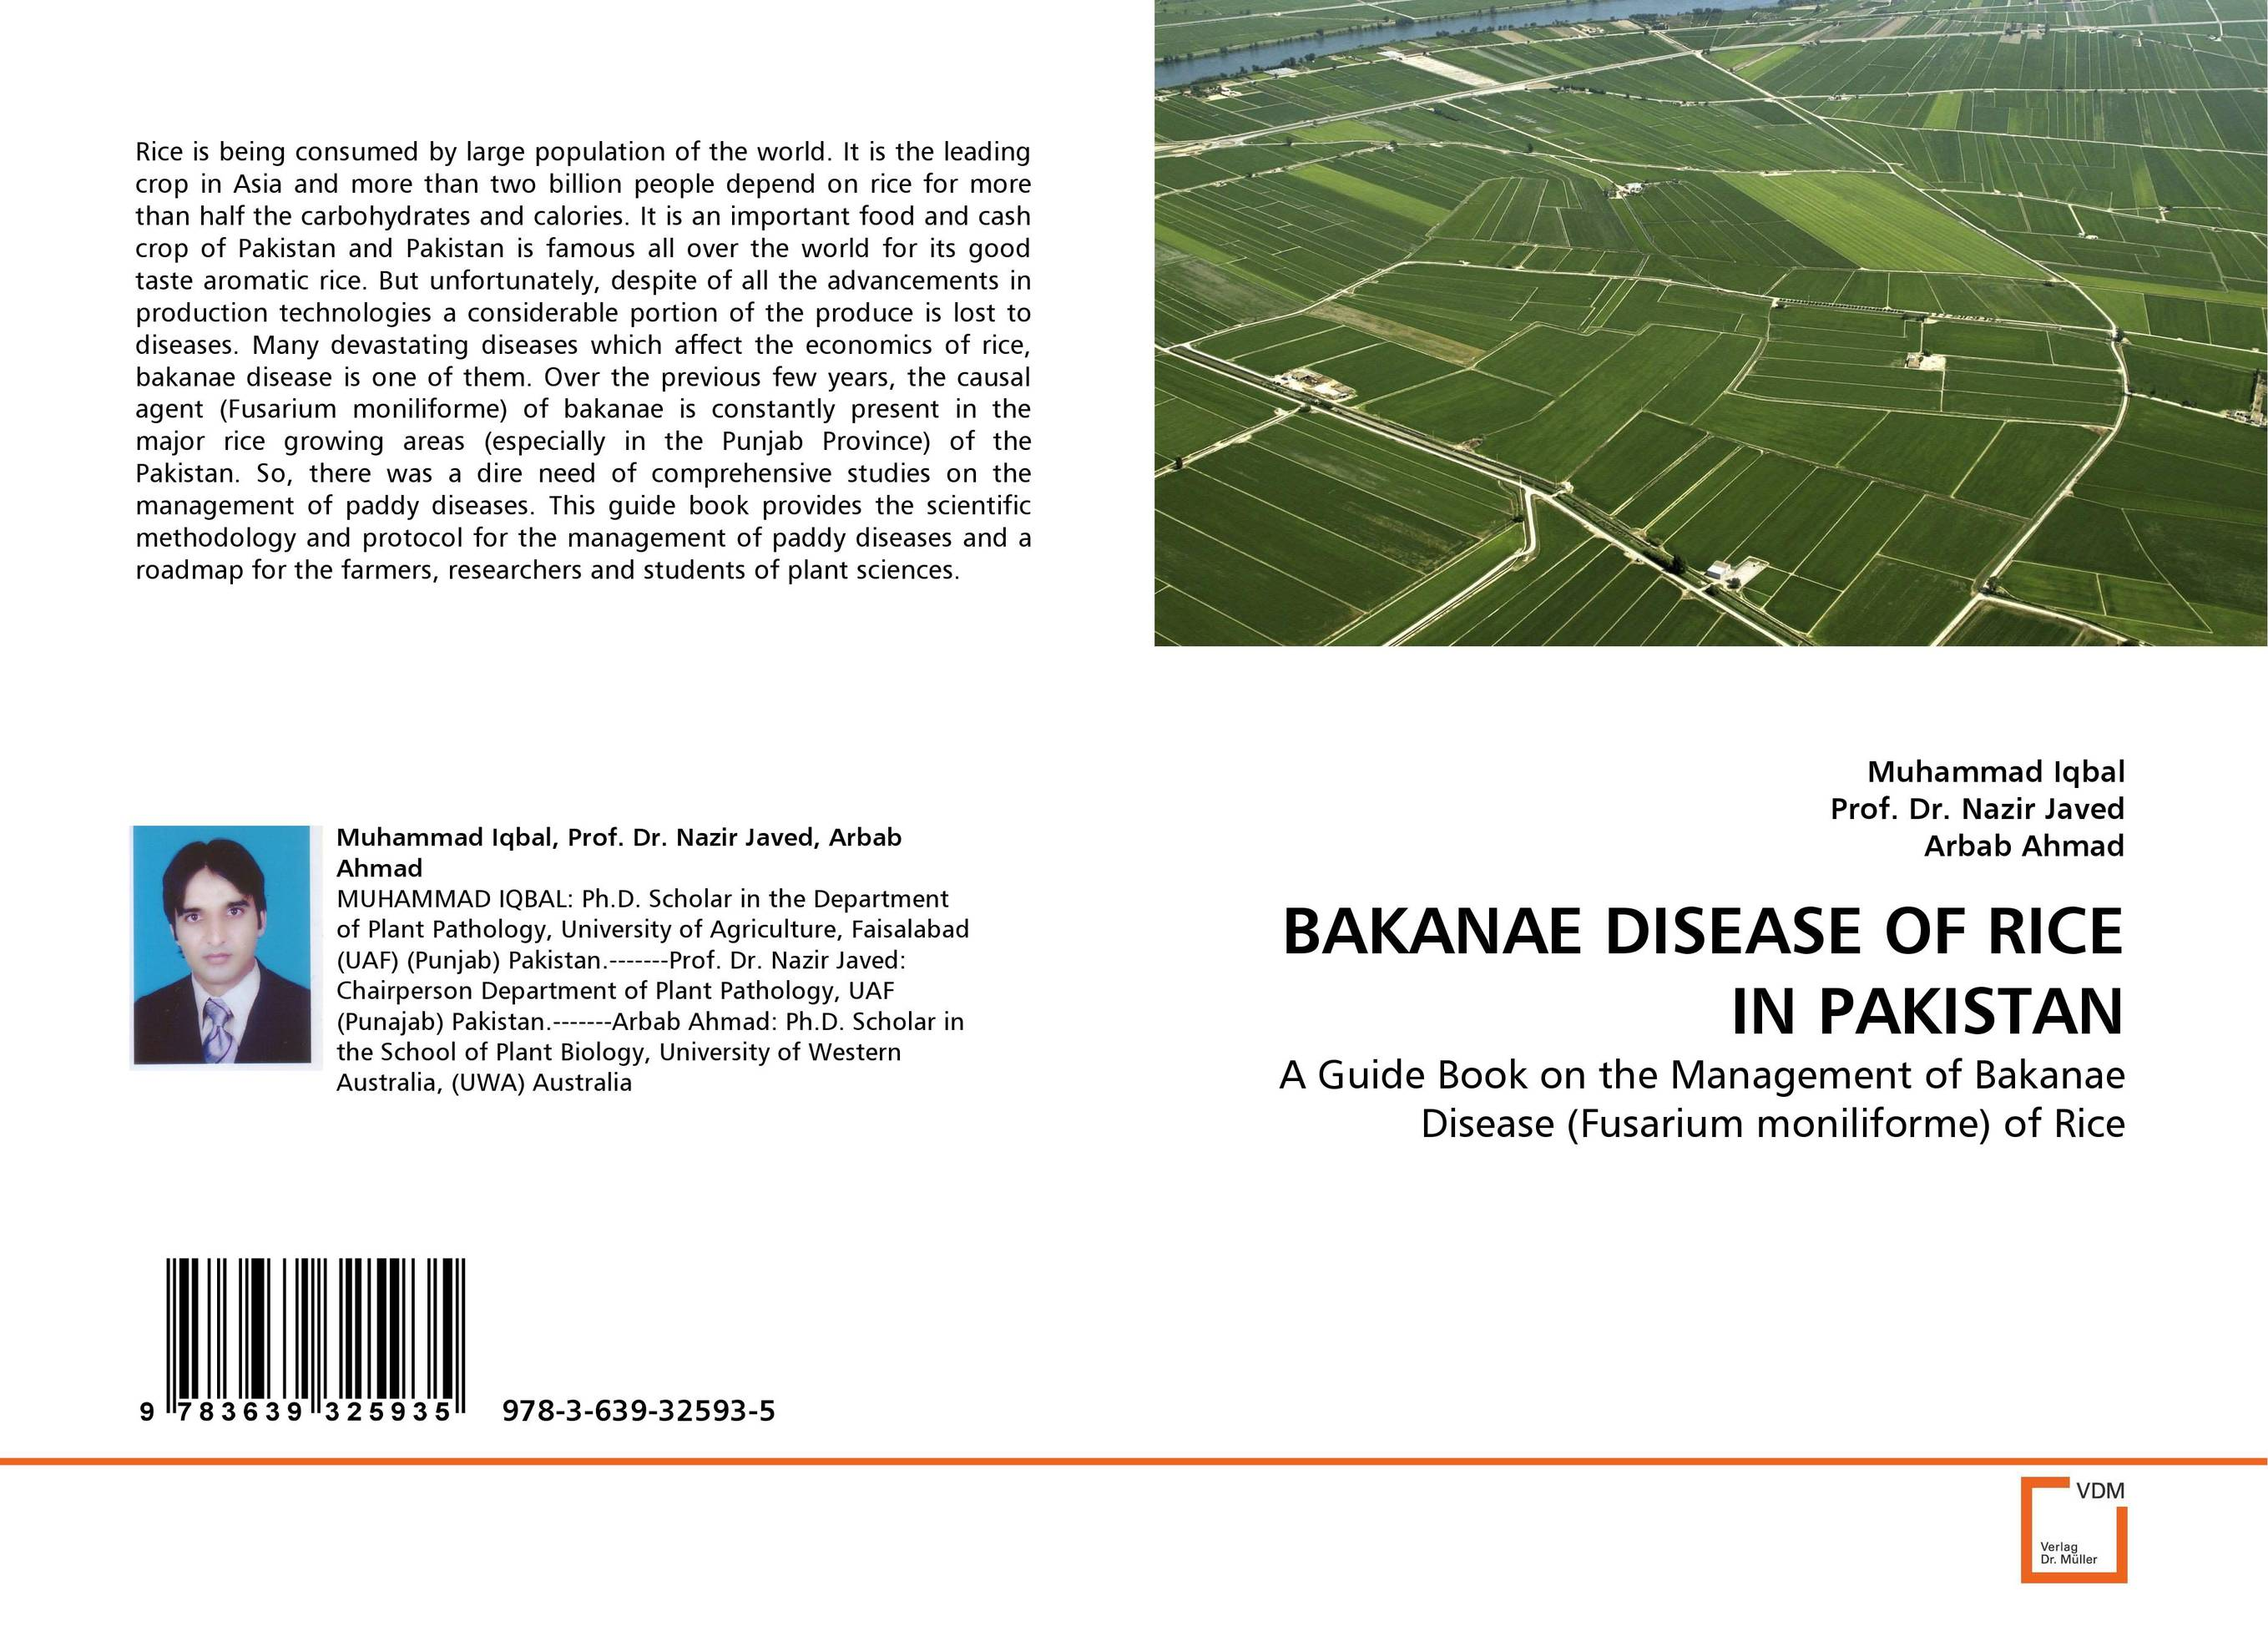 BAKANAE DISEASE OF RICE IN PAKISTAN pakistan on the brink the future of pakistan afghanistan and the west